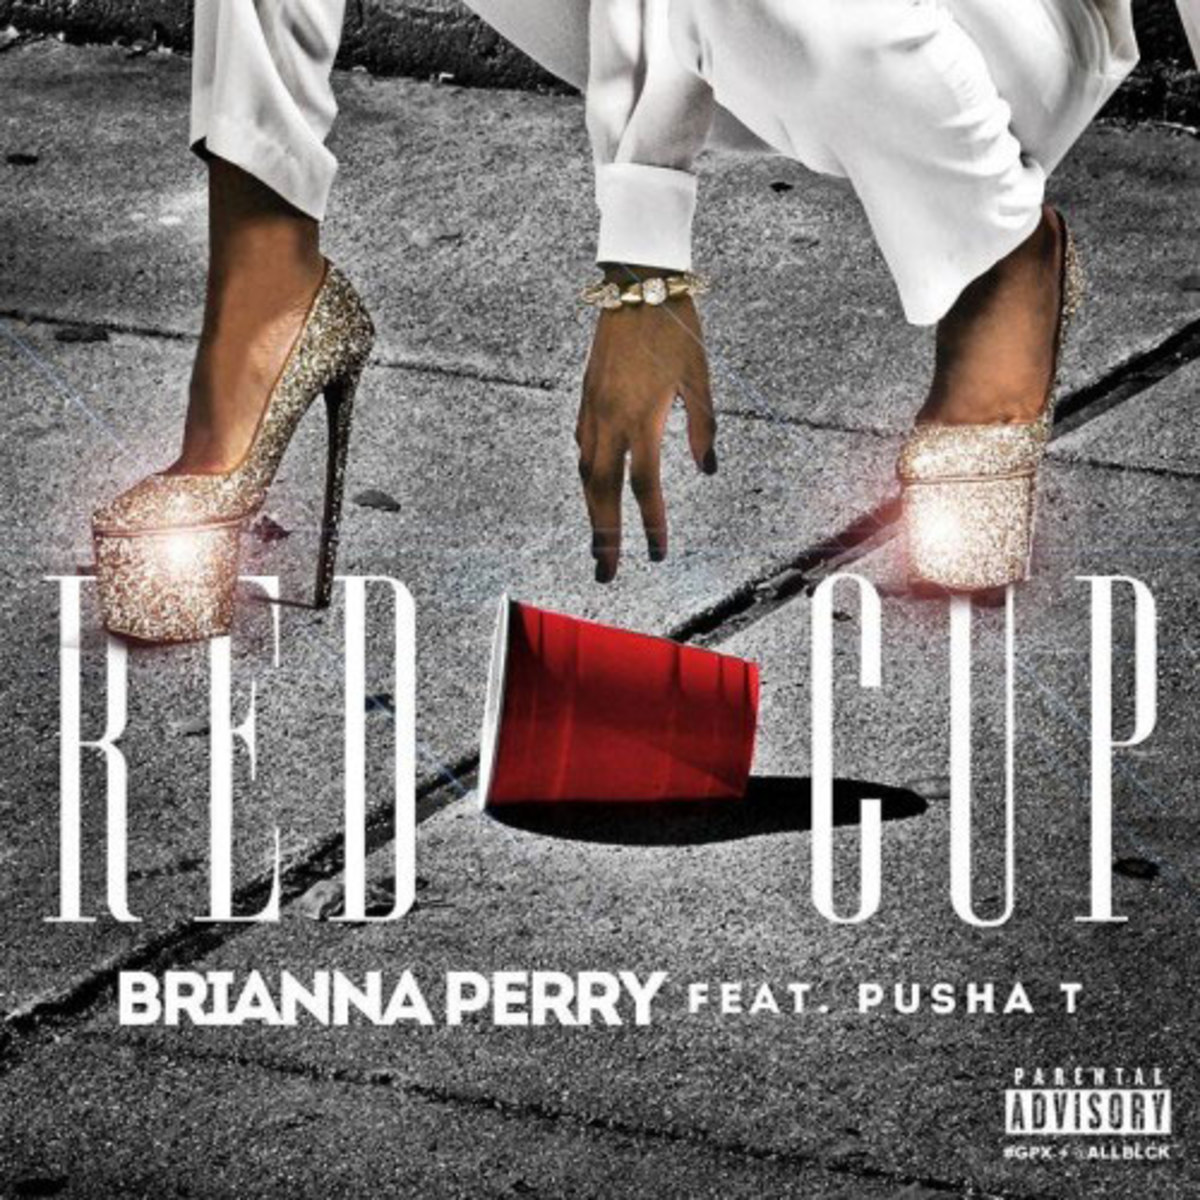 briannaperry-redcup.jpg